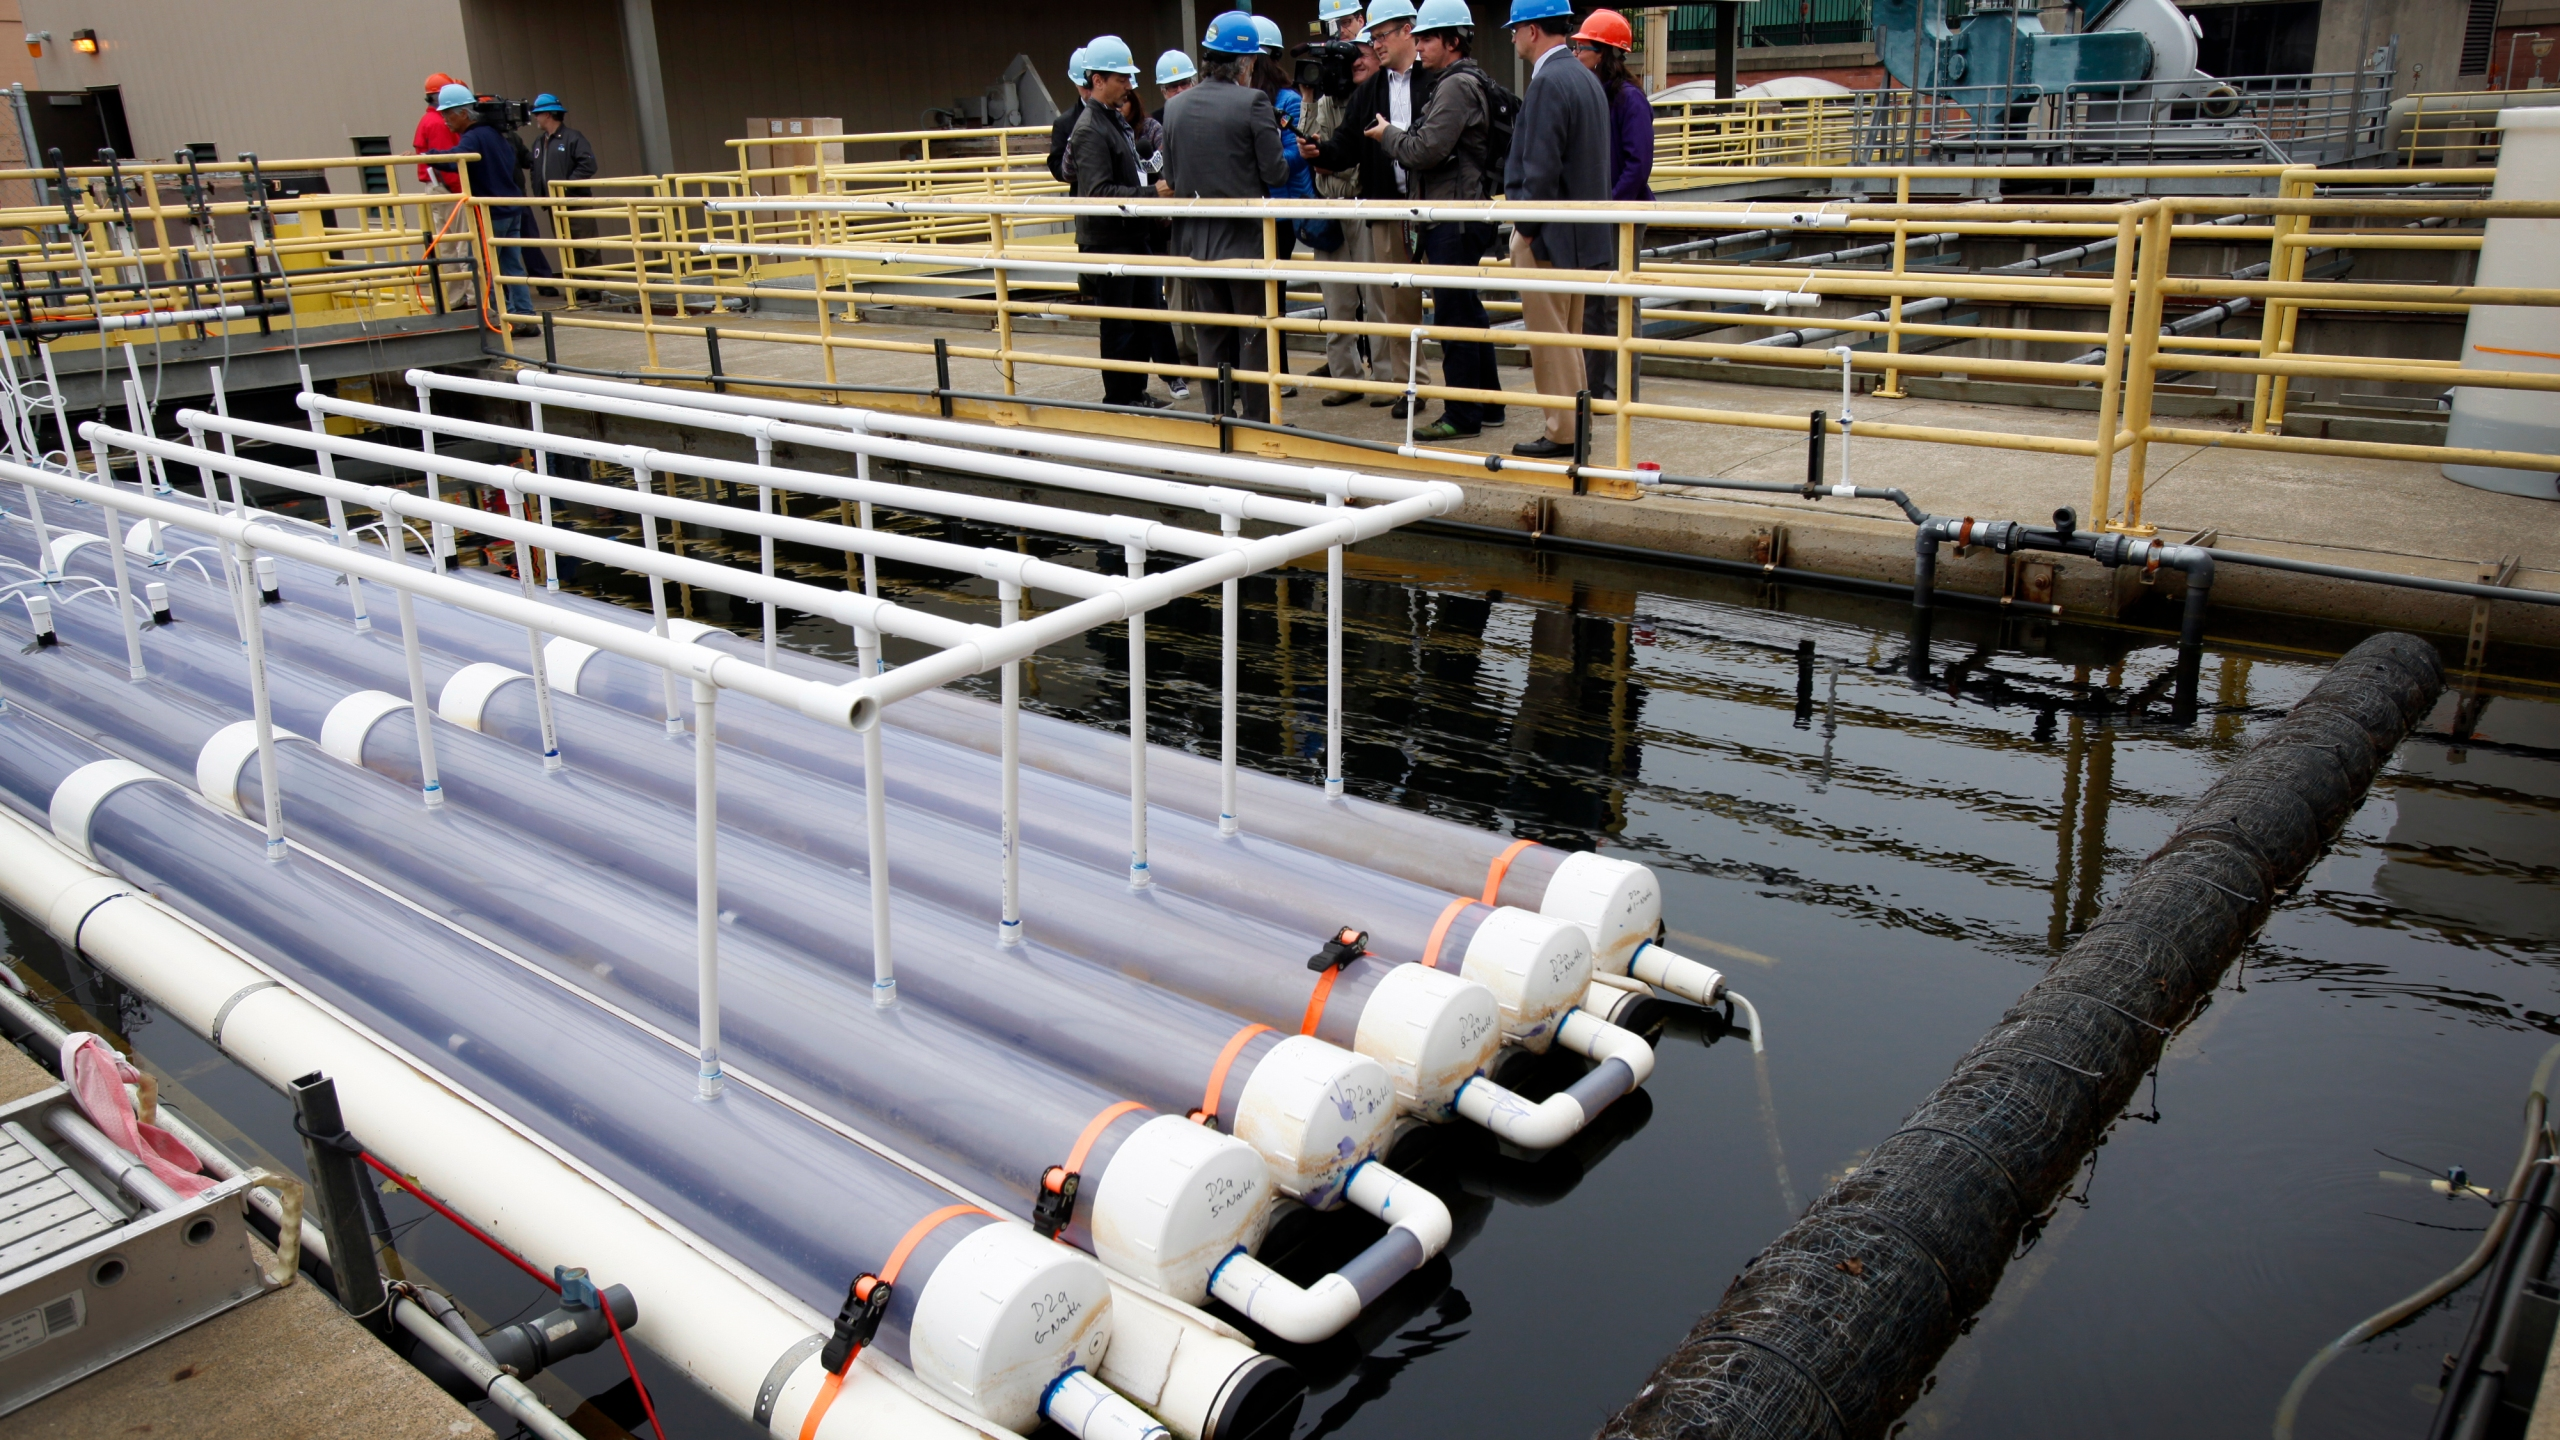 A group of scientists tour of the wastewater biofuel system at the San Francisco Public Utilities Commission's Southeast Water Pollution Control Plant April 17, 2012 in San Francisco, California. (Sarah Rice/Getty Images)